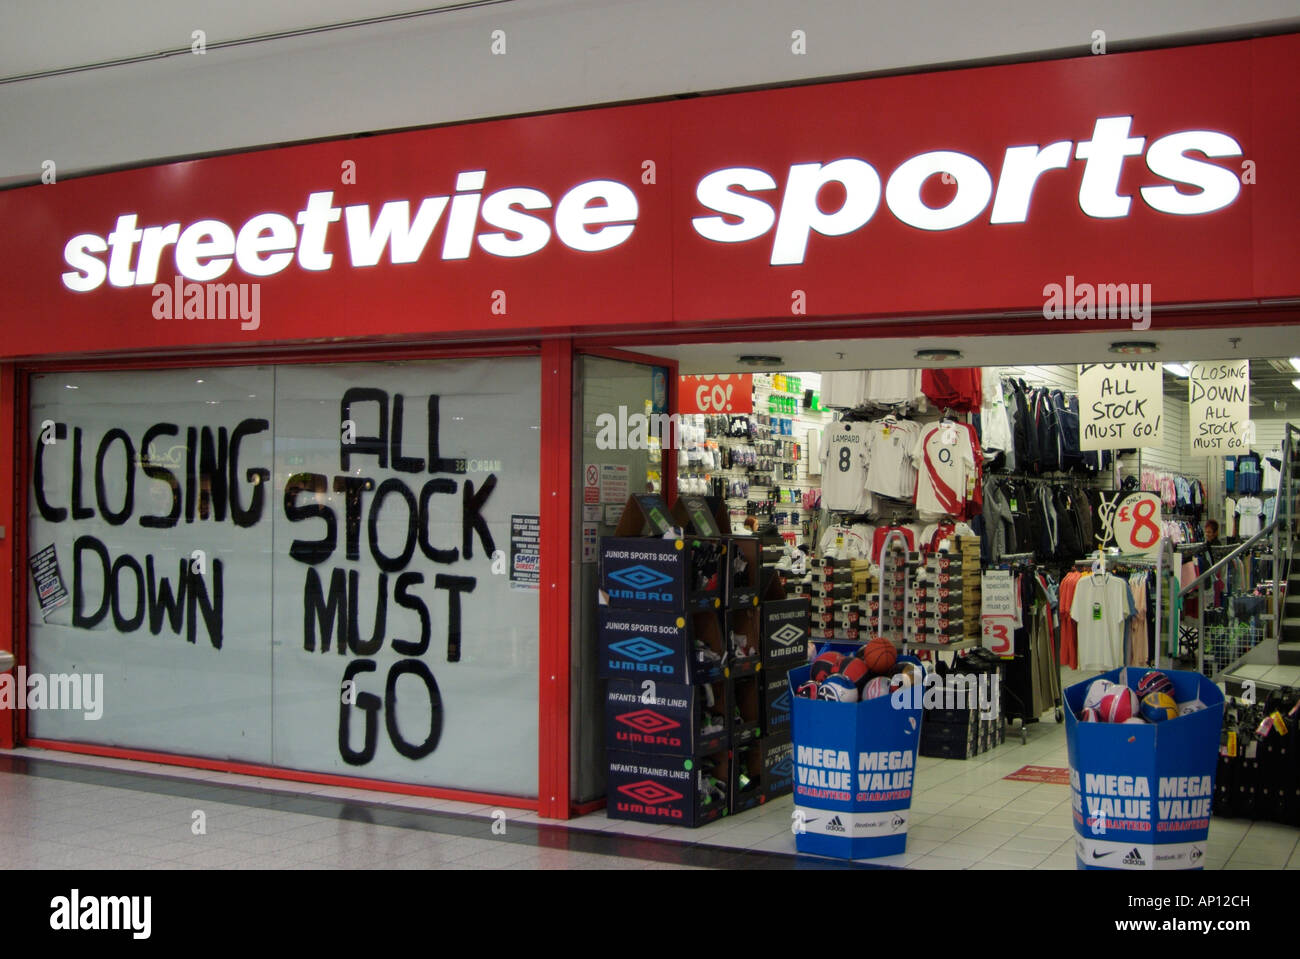 http://c8.alamy.com/comp/AP12CH/streetwise-sports-street-wise-closing-down-all-stock-must-go-game-AP12CH.jpg